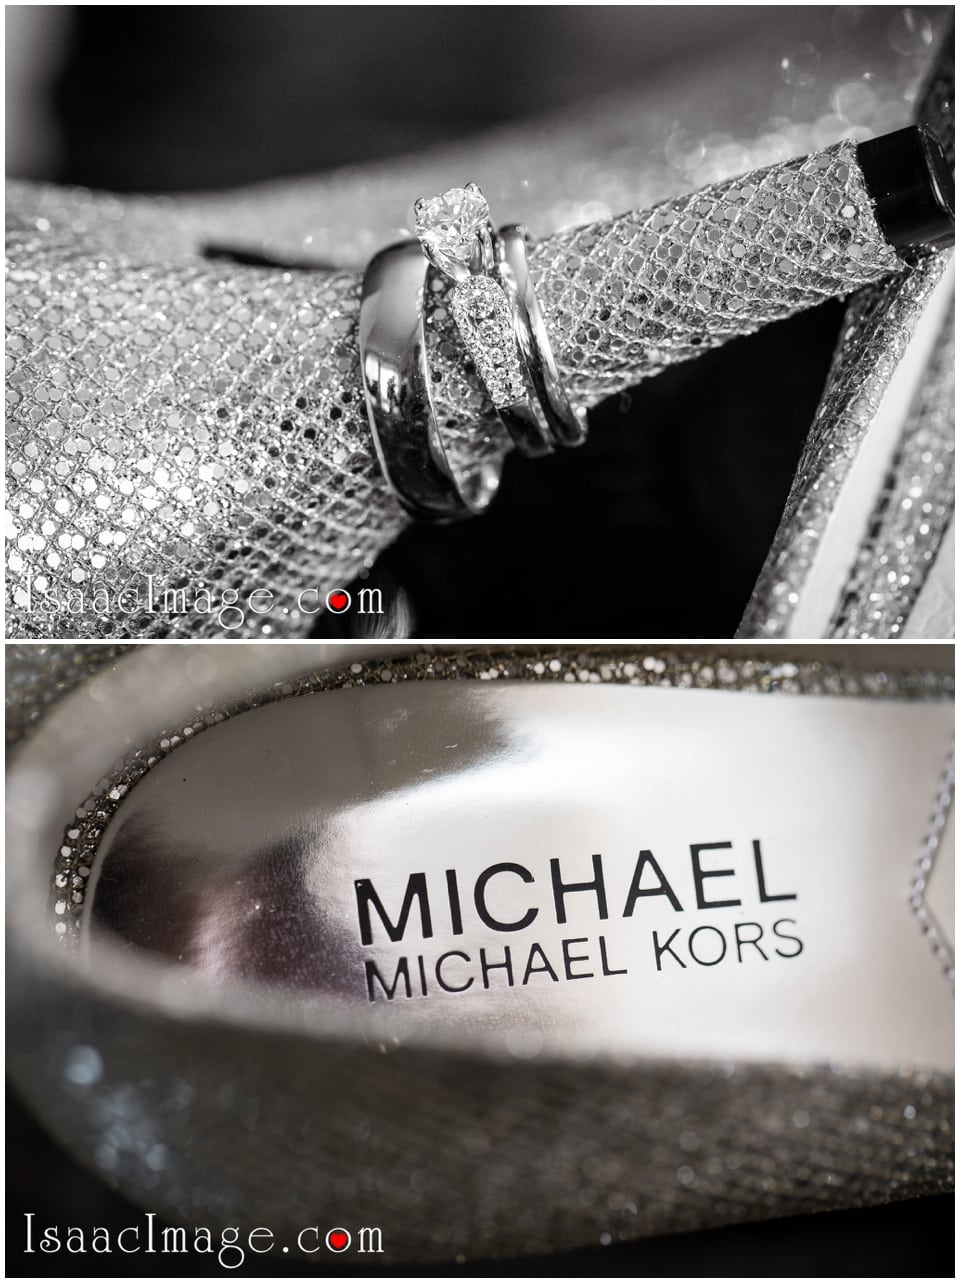 Michael Kors Wedding shoes